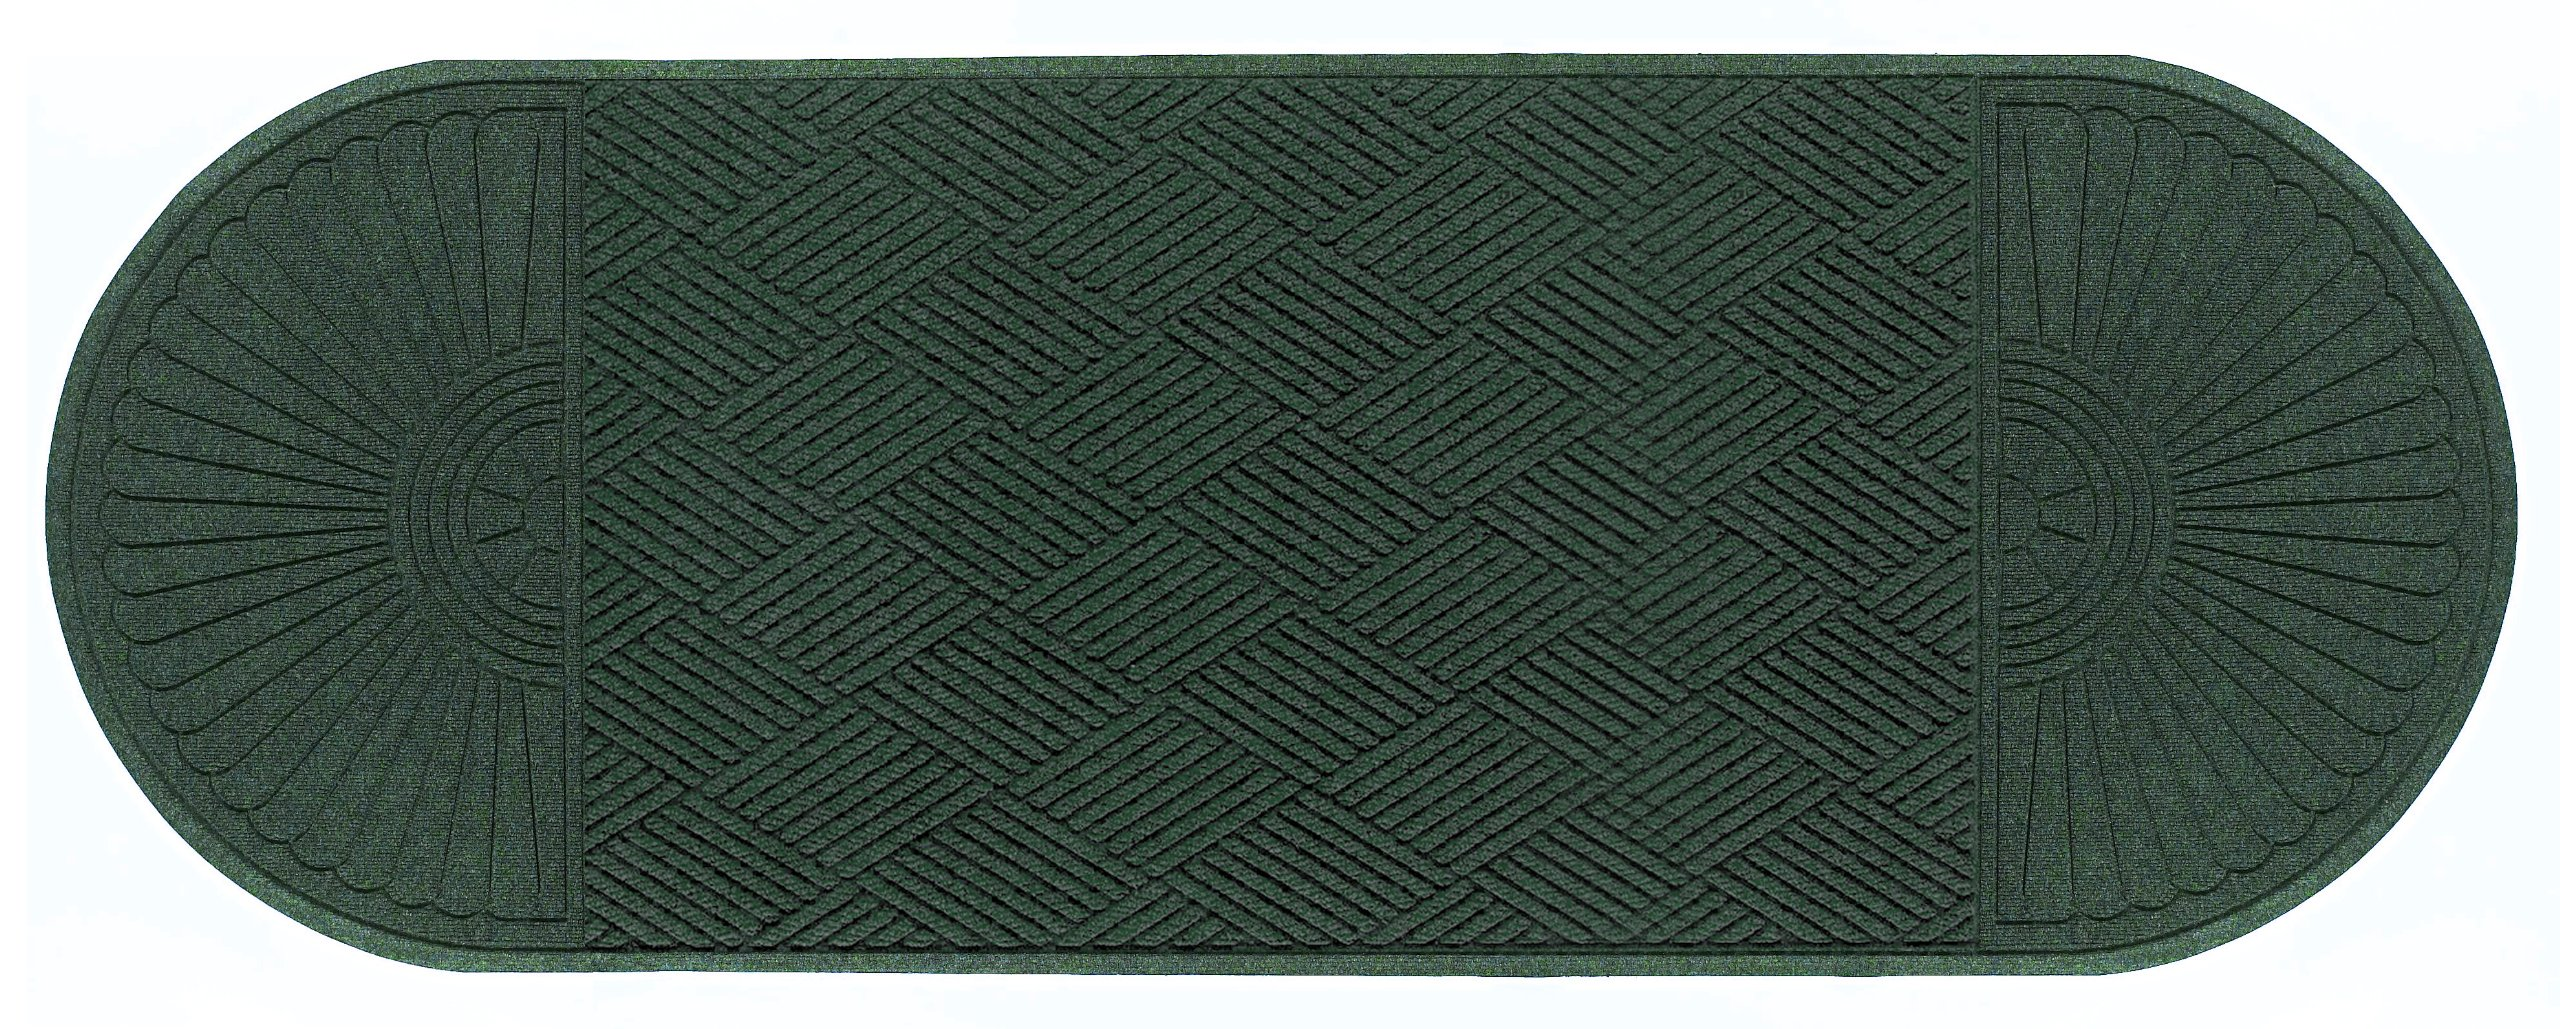 M+A Matting 2249 Waterhog Eco Grand Premier PET Polyester Fiber Double Ends Entrance Indoor/Outdoor Floor Mat, SBR Rubber Backing, 10.1' Length x 6' Width, 3/8'' Thick, Southern Pine